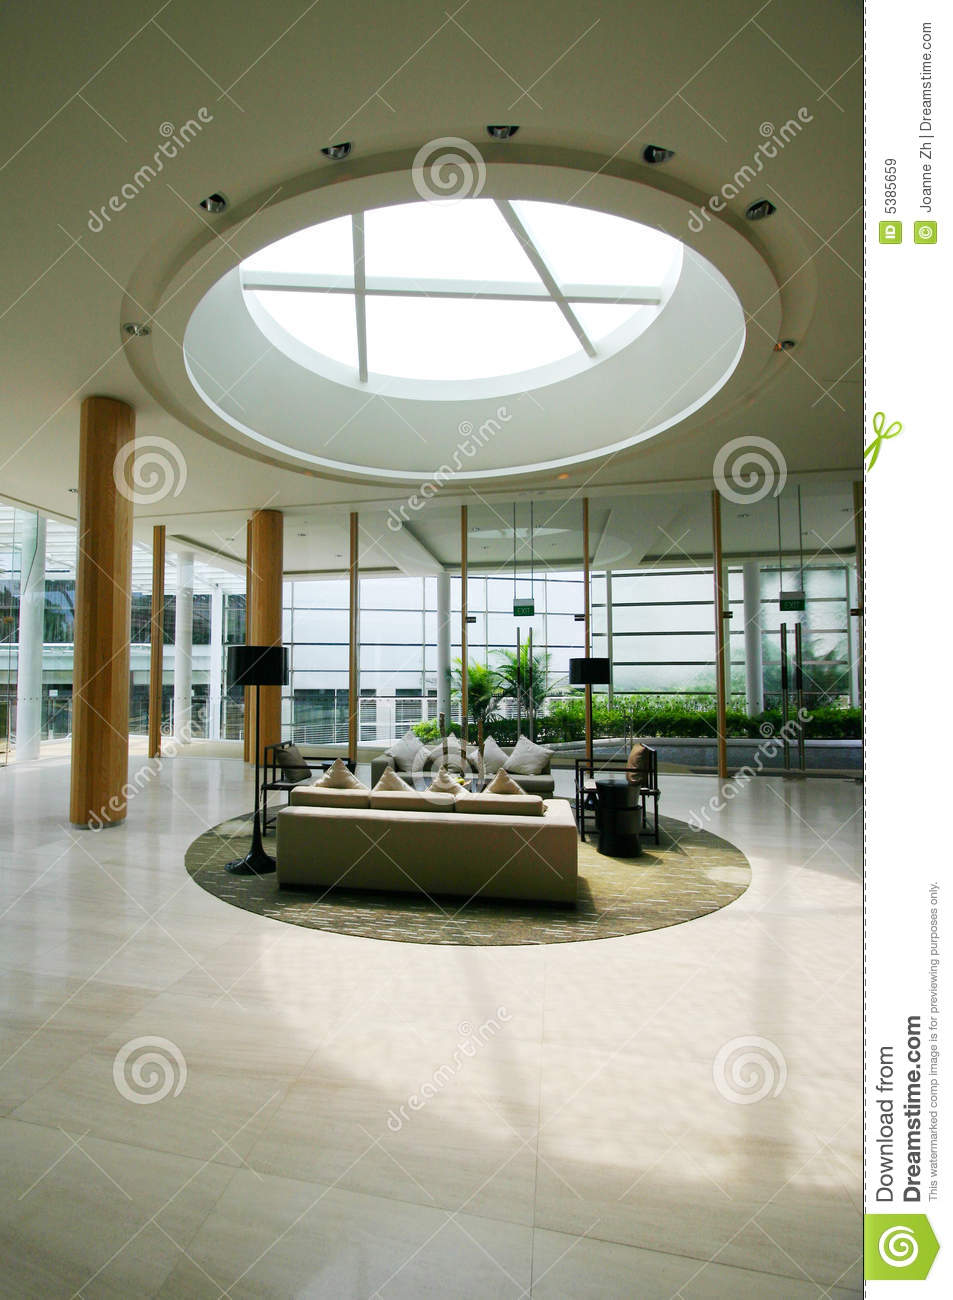 Hotel Foyer Furniture : Modern holiday resorts foyer interior royalty free stock